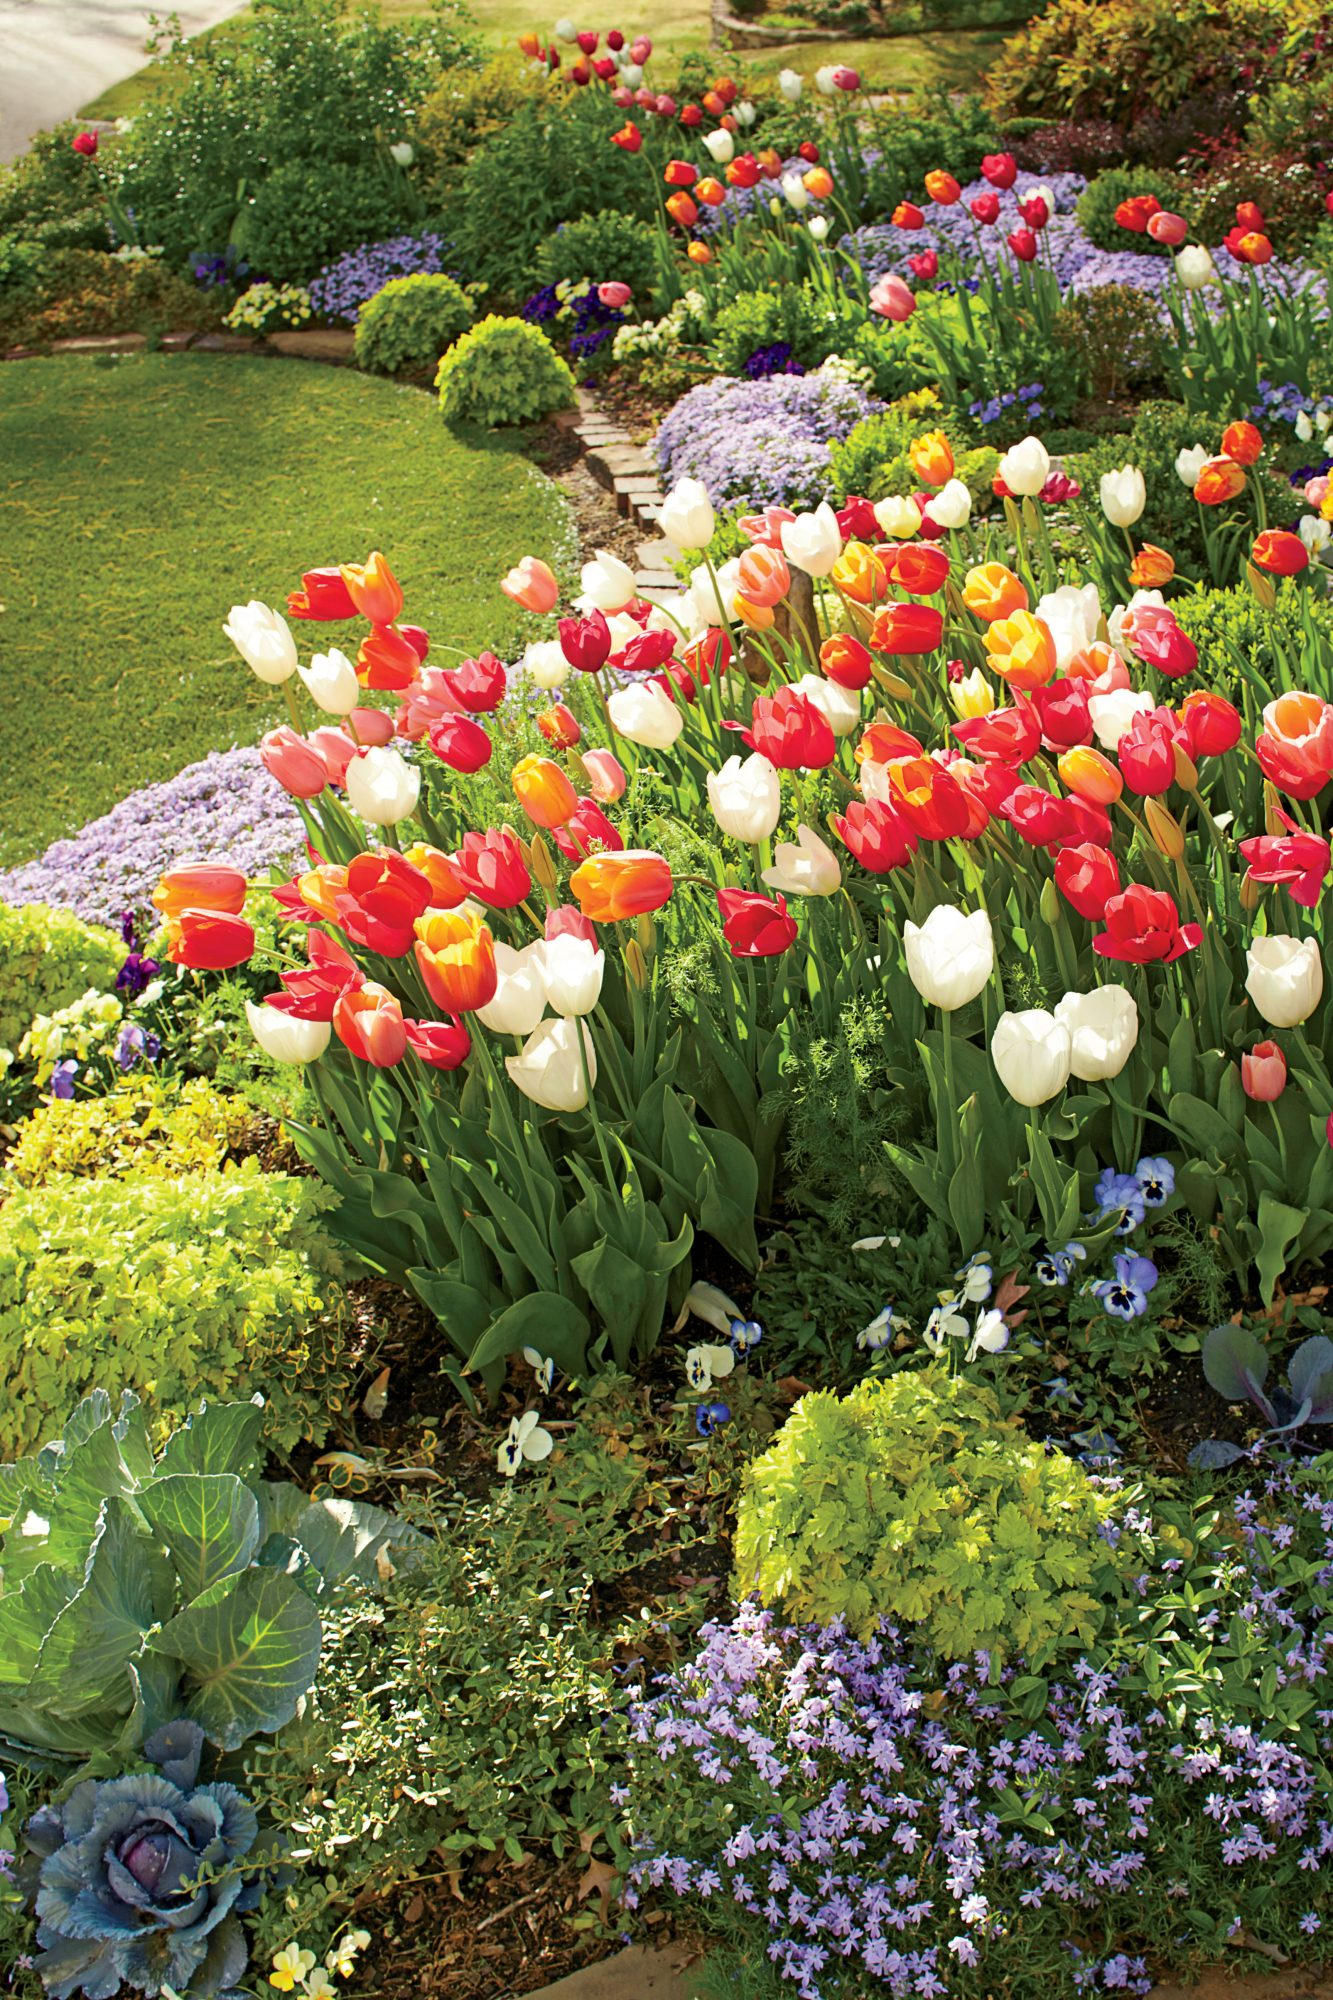 Linda Vater English Garden with Tulips in Oklahoma